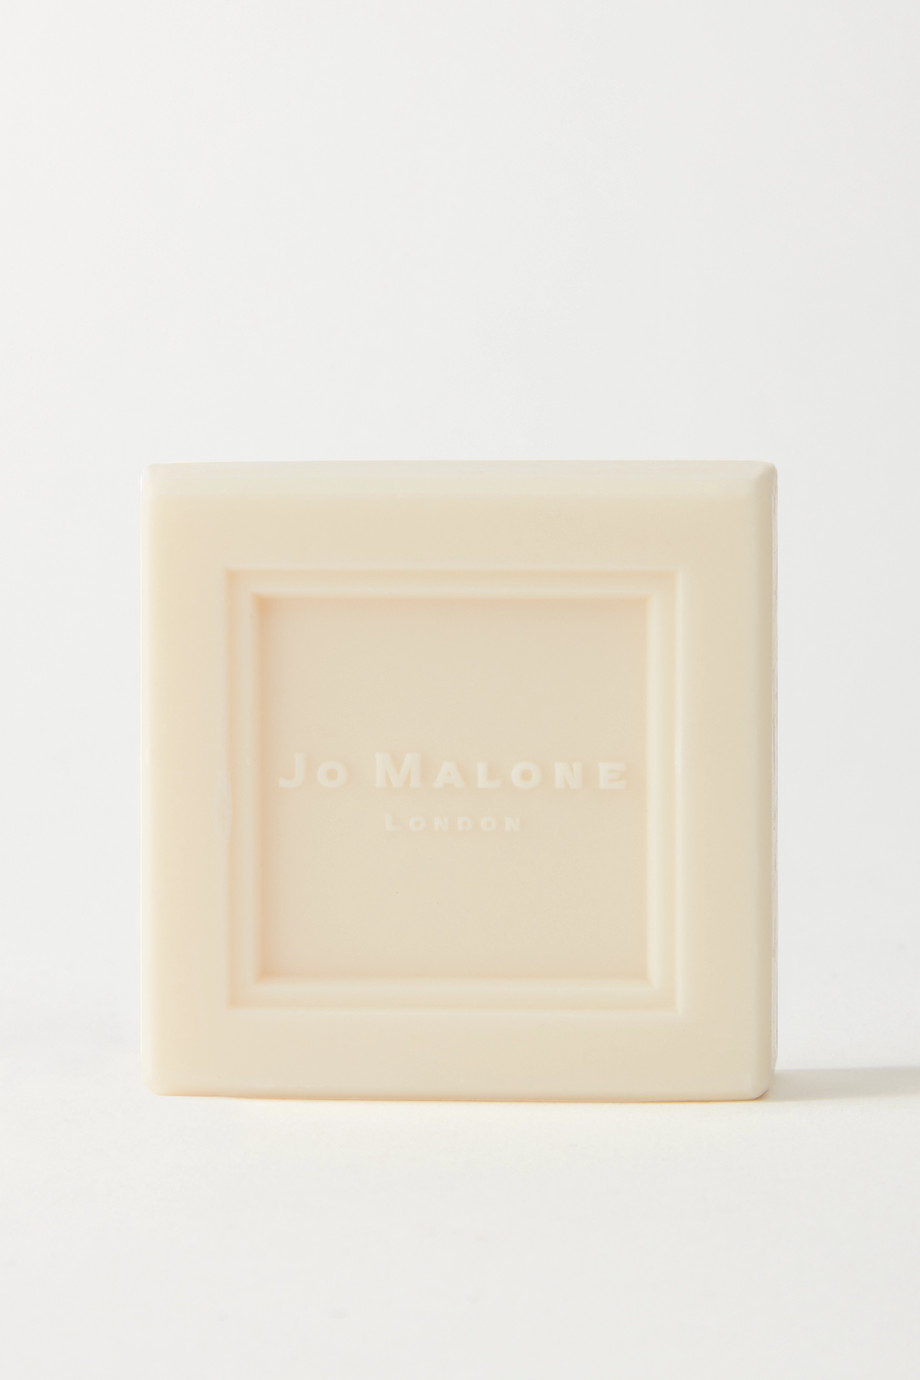 Jo Malone London English Pear & Freesia Soap, 100g